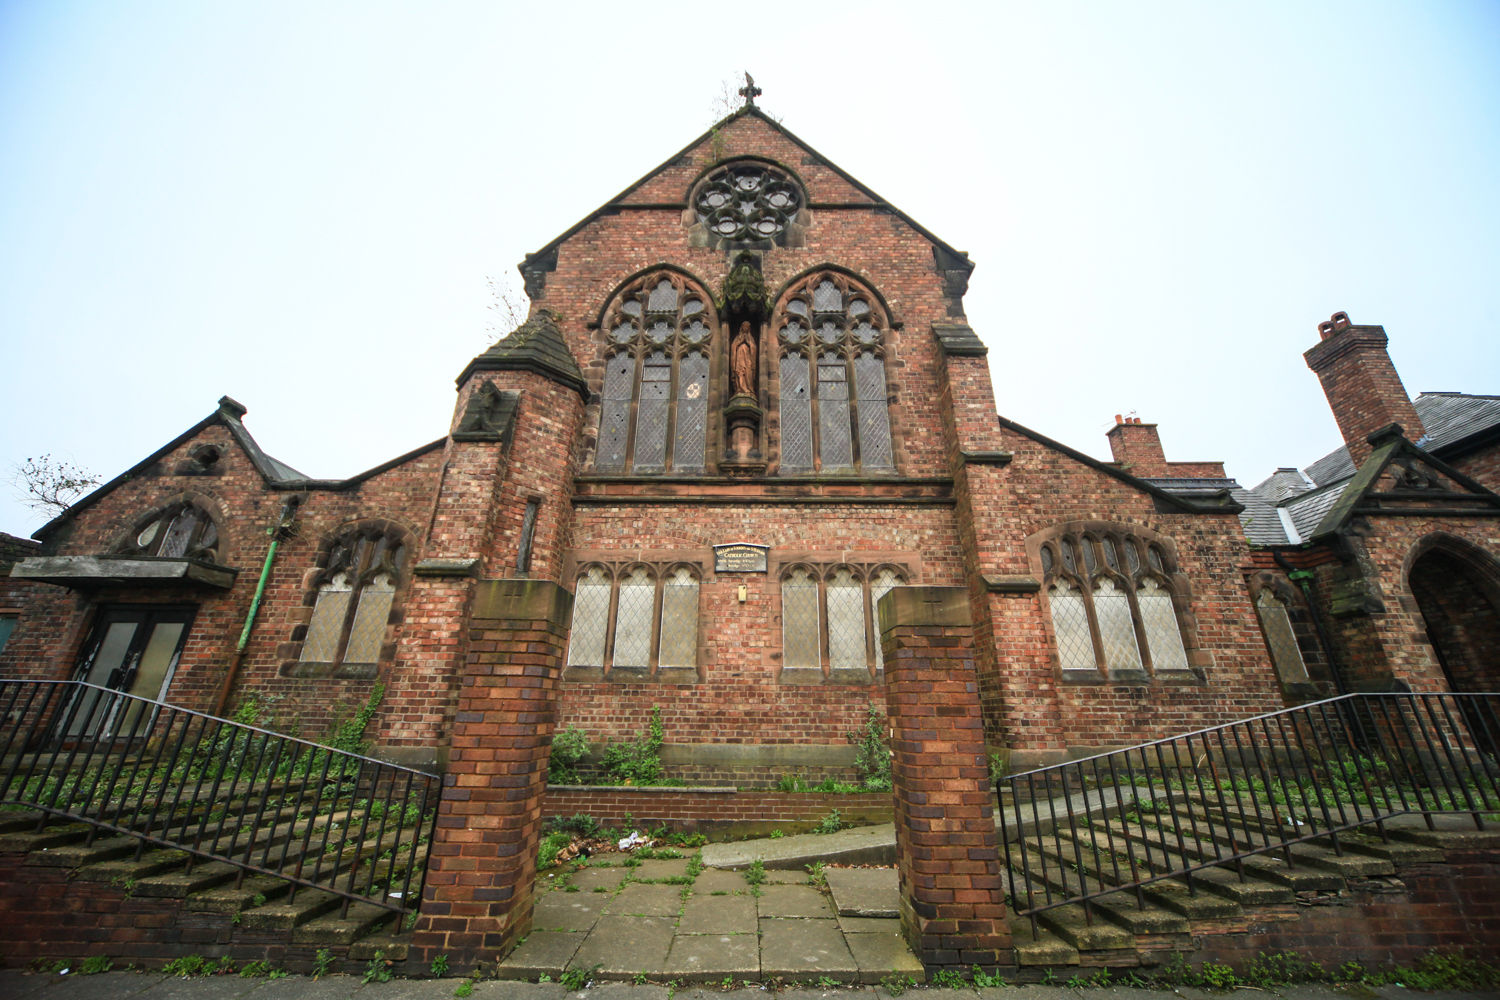 St Bernard's RC Church on Kingsley Road - work has started to transform it into affordable housing